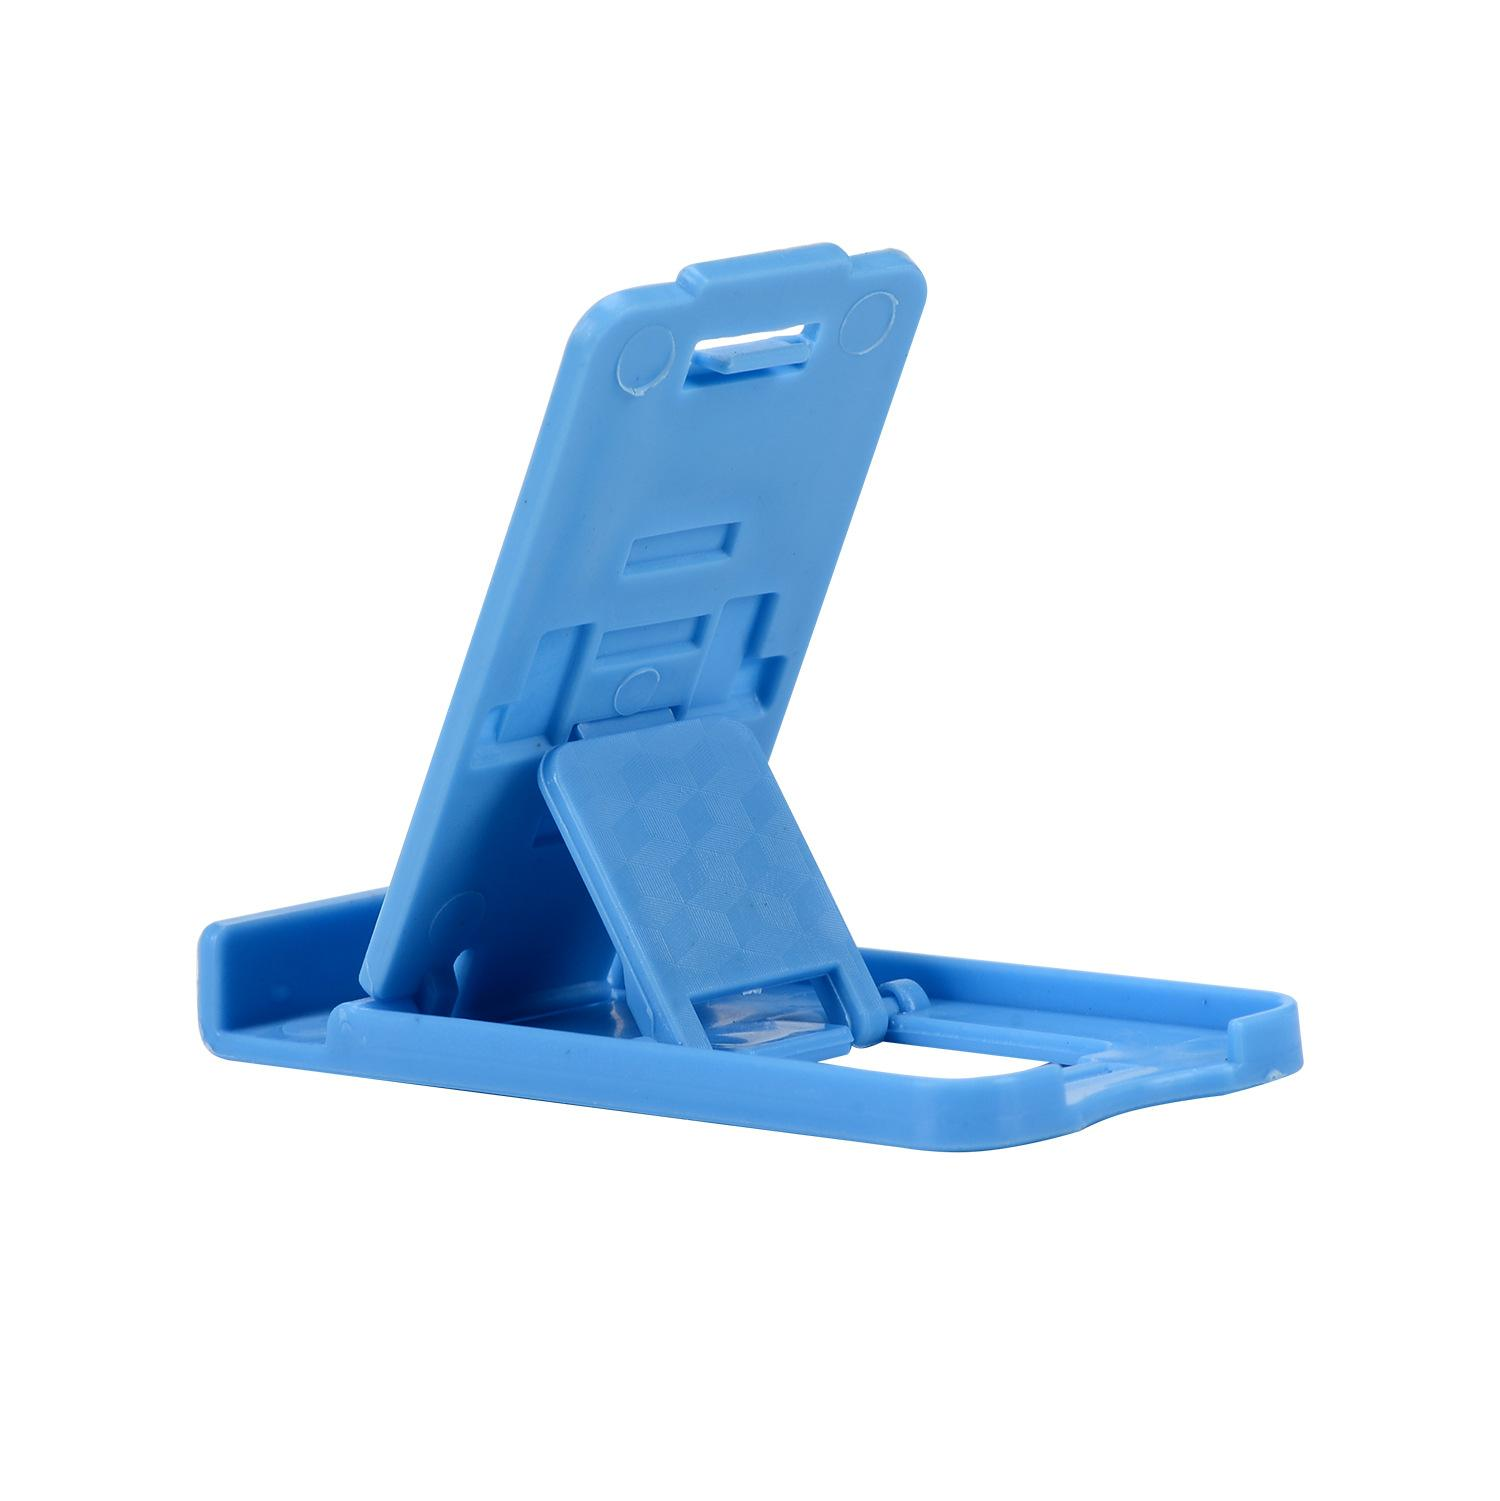 Yuntohe Desktop Phone Stand Folding Mobile Phone Stand General Stand for Phone Support for Xiaomi Mi 5a SmartPhone Tablet